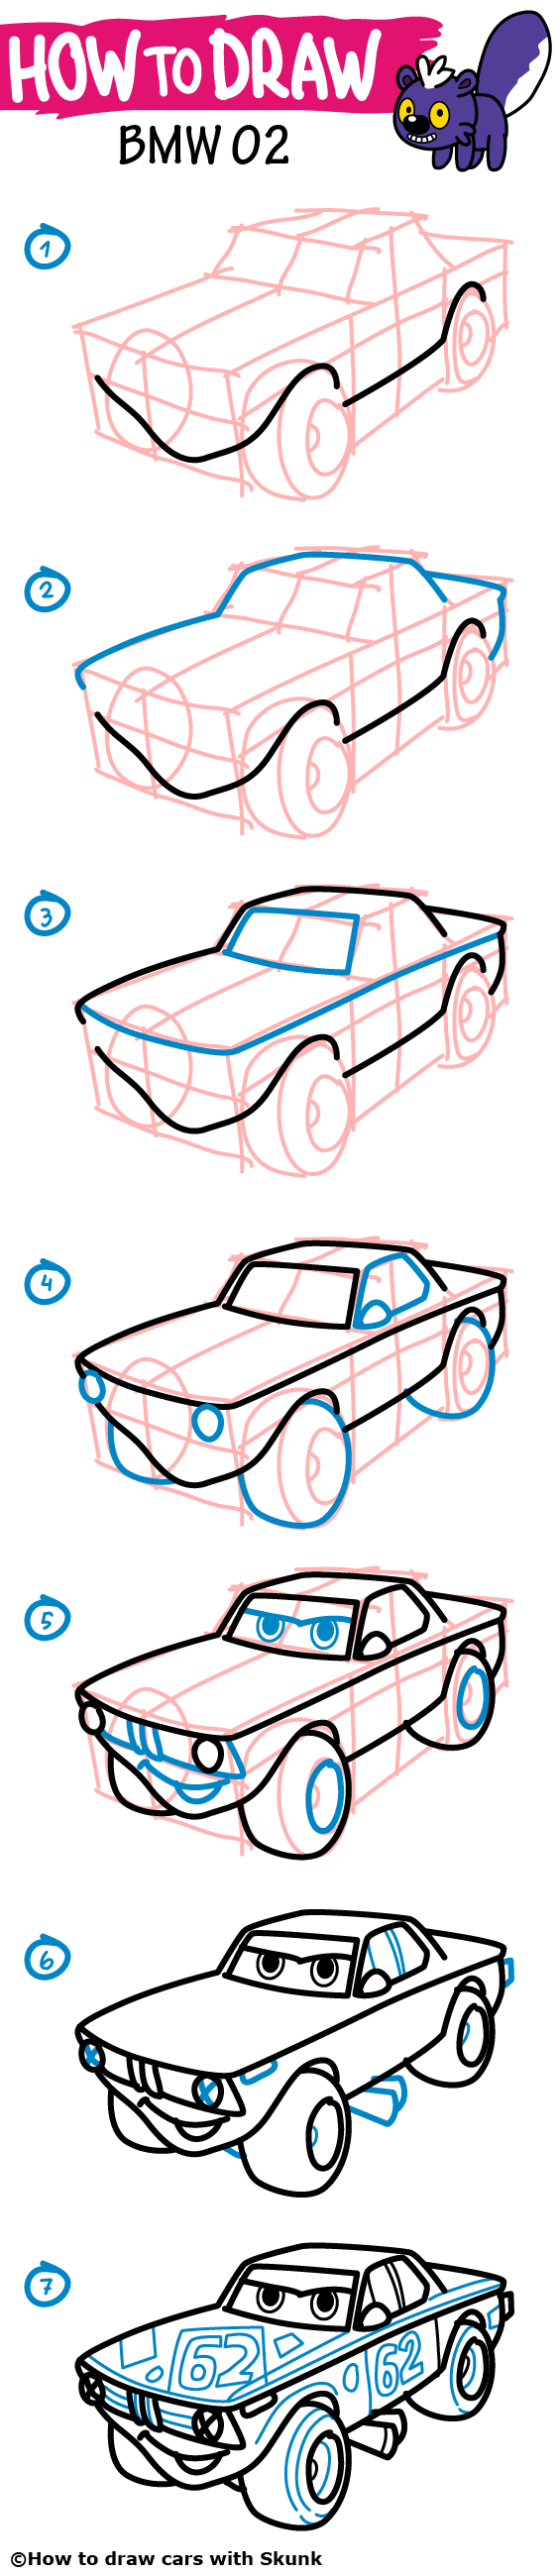 564x2600 How To Draw A Car. Bmw 02 Drag Racing Car. Coloring With Funny